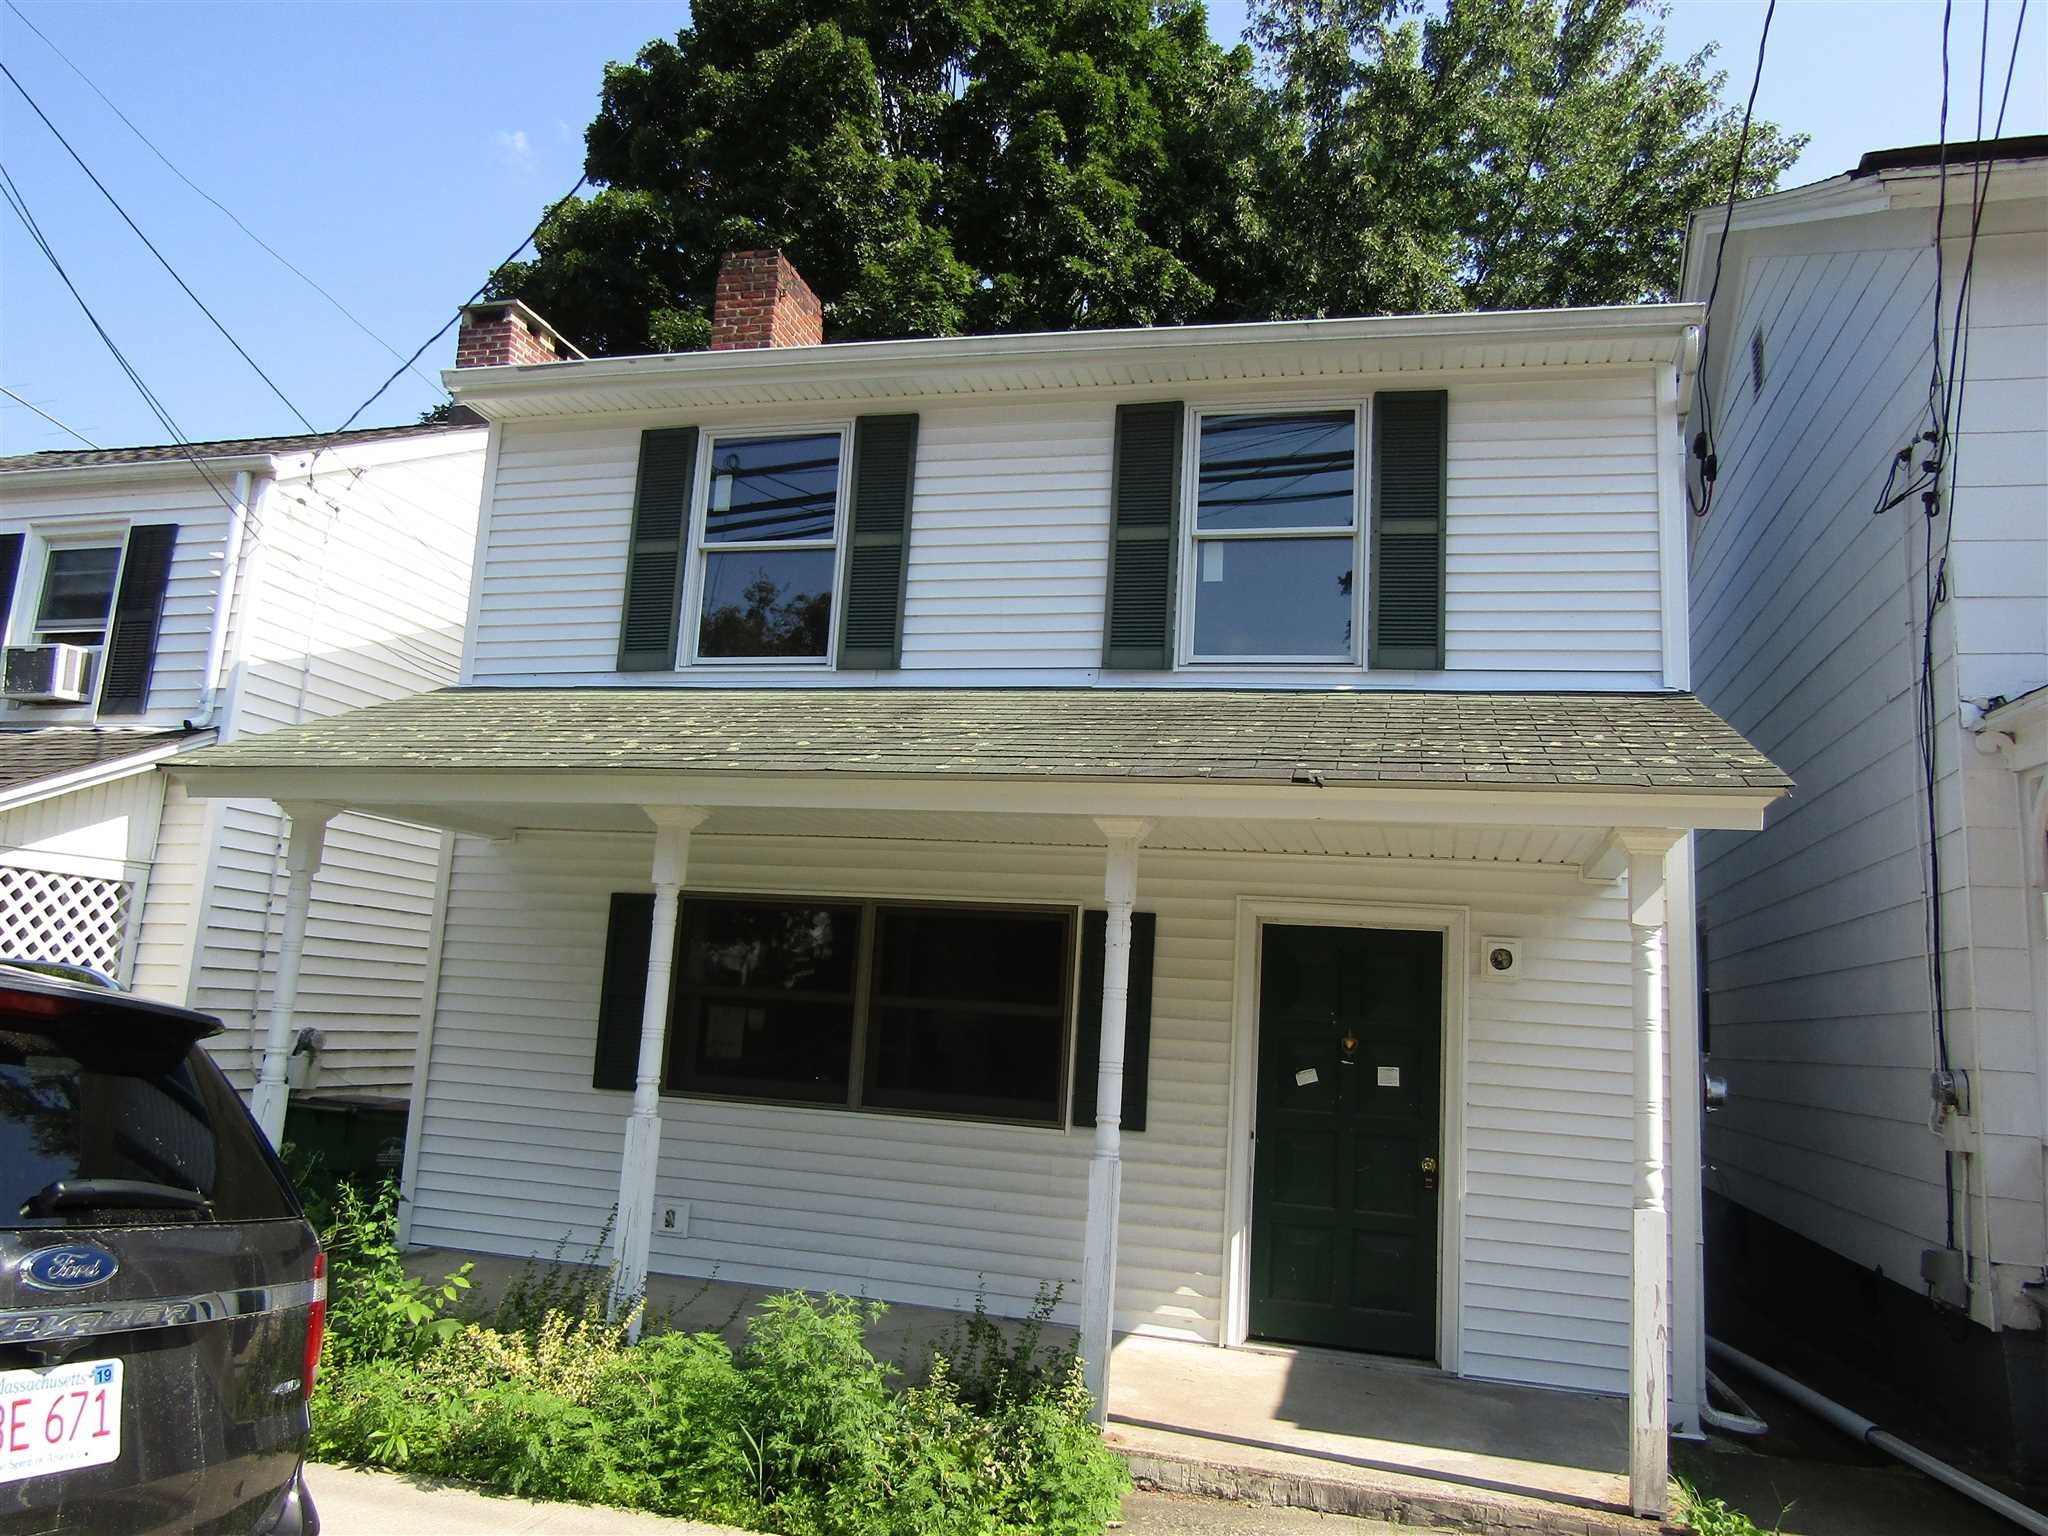 Single Family Home for Sale at 269 MAIN 269 MAIN Philipstown, New York 10516 United States